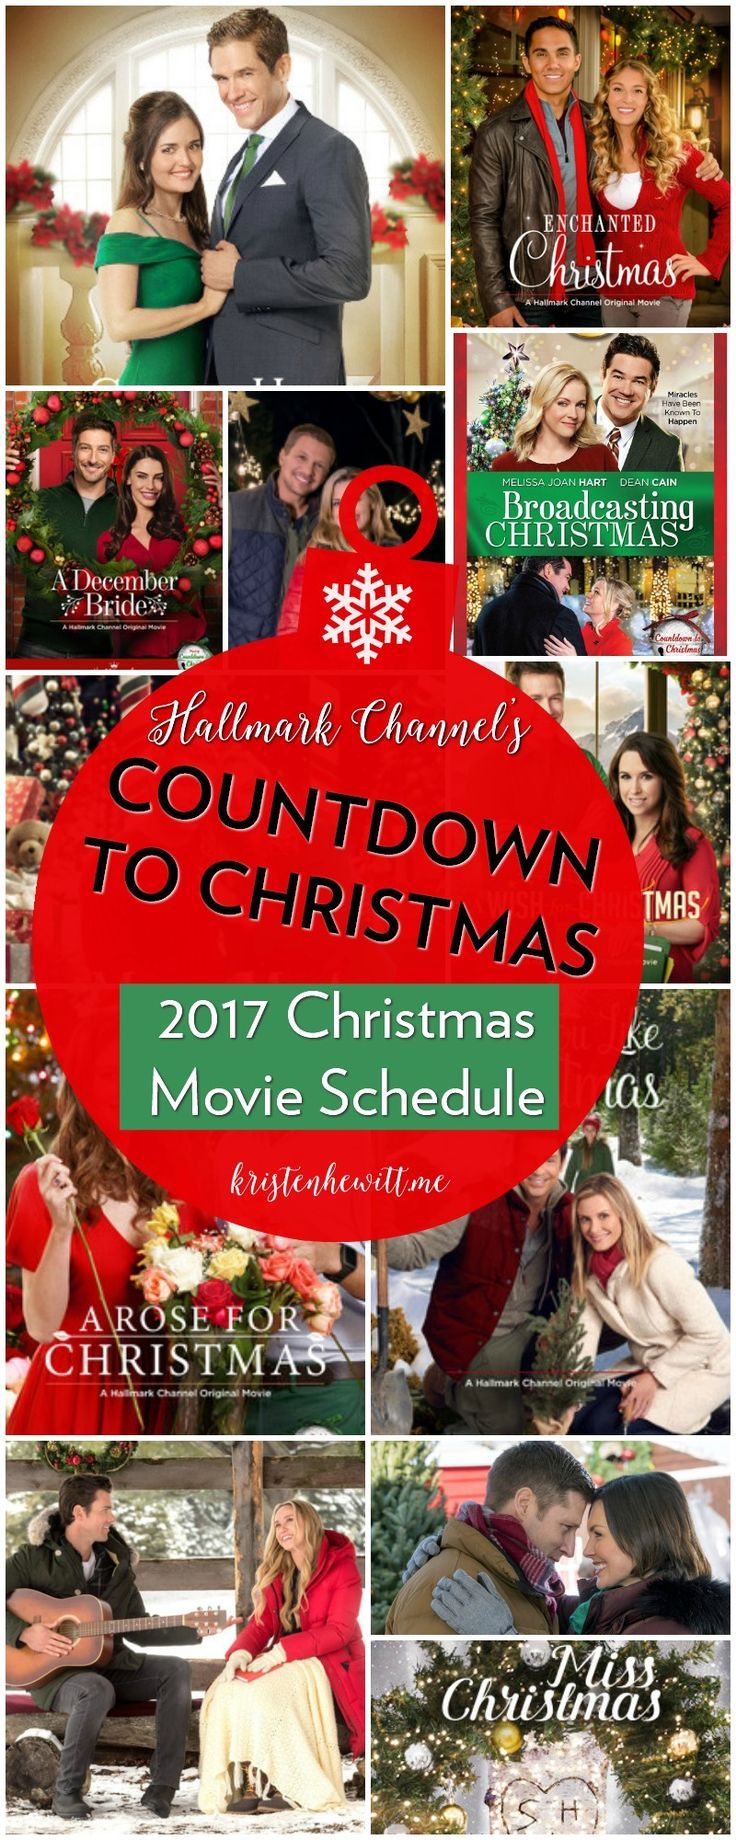 Are you too OBSESSED with Hallmark Christmas movies? Get your schedule here!!!---->Hallmark Christmas Movies 2017 Schedule